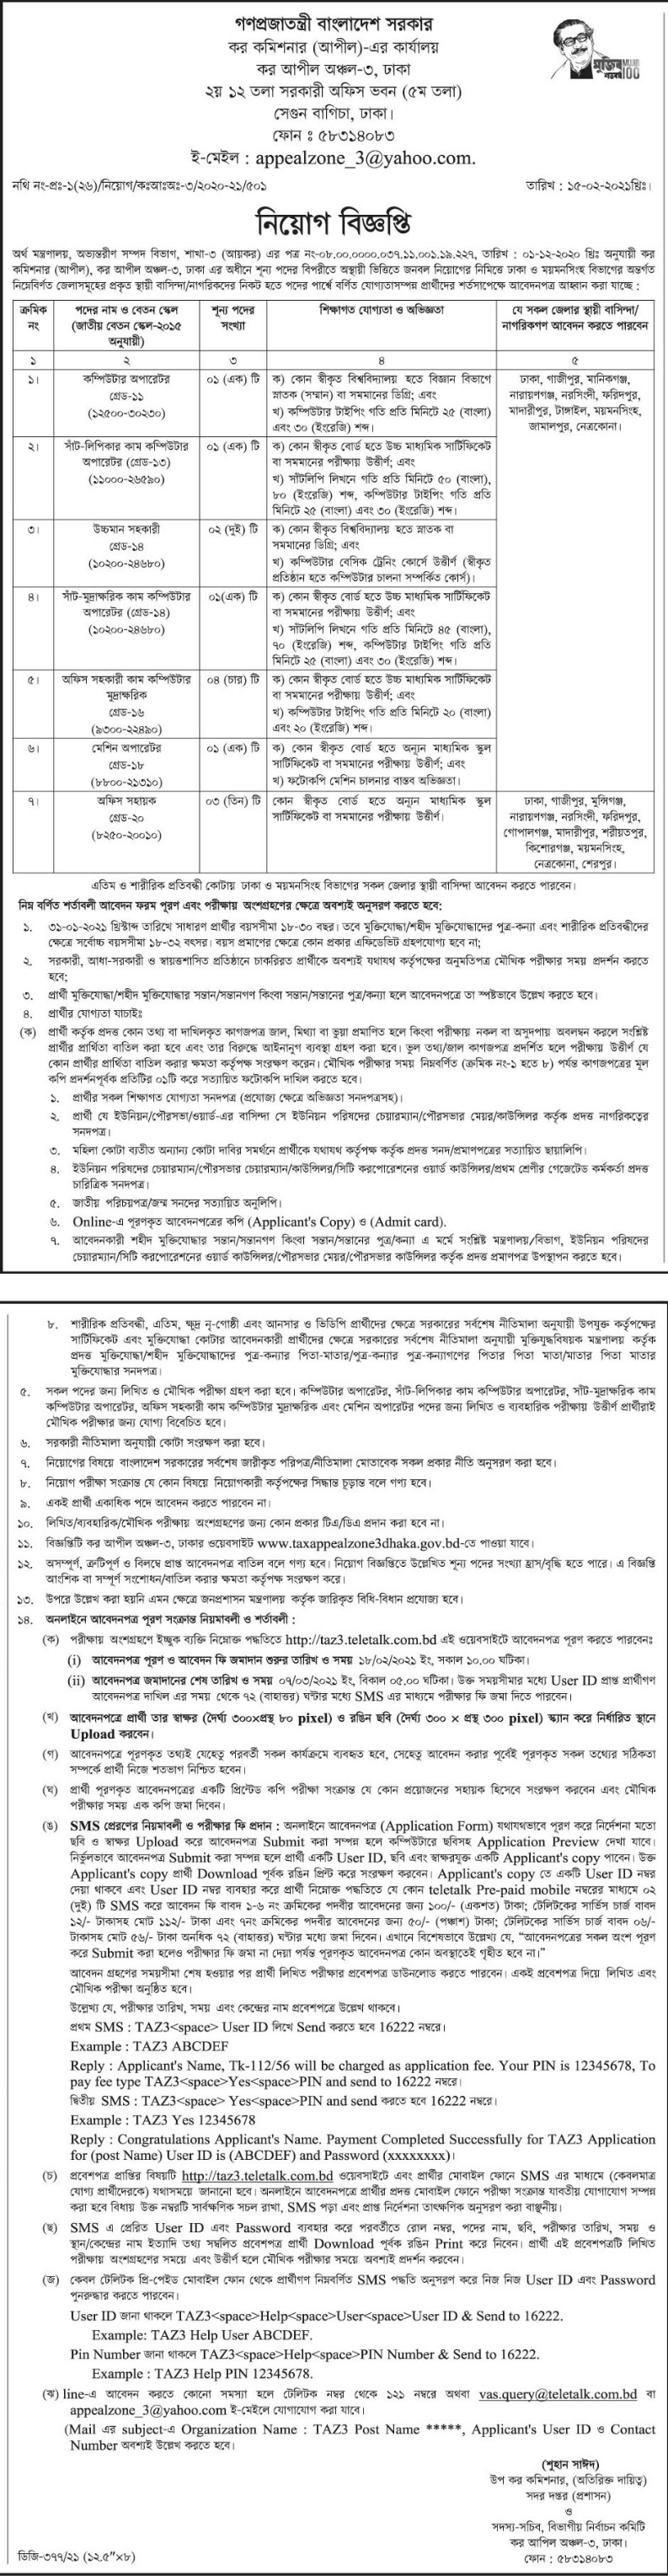 Tax Commission Office Job Circular 2021 Apply